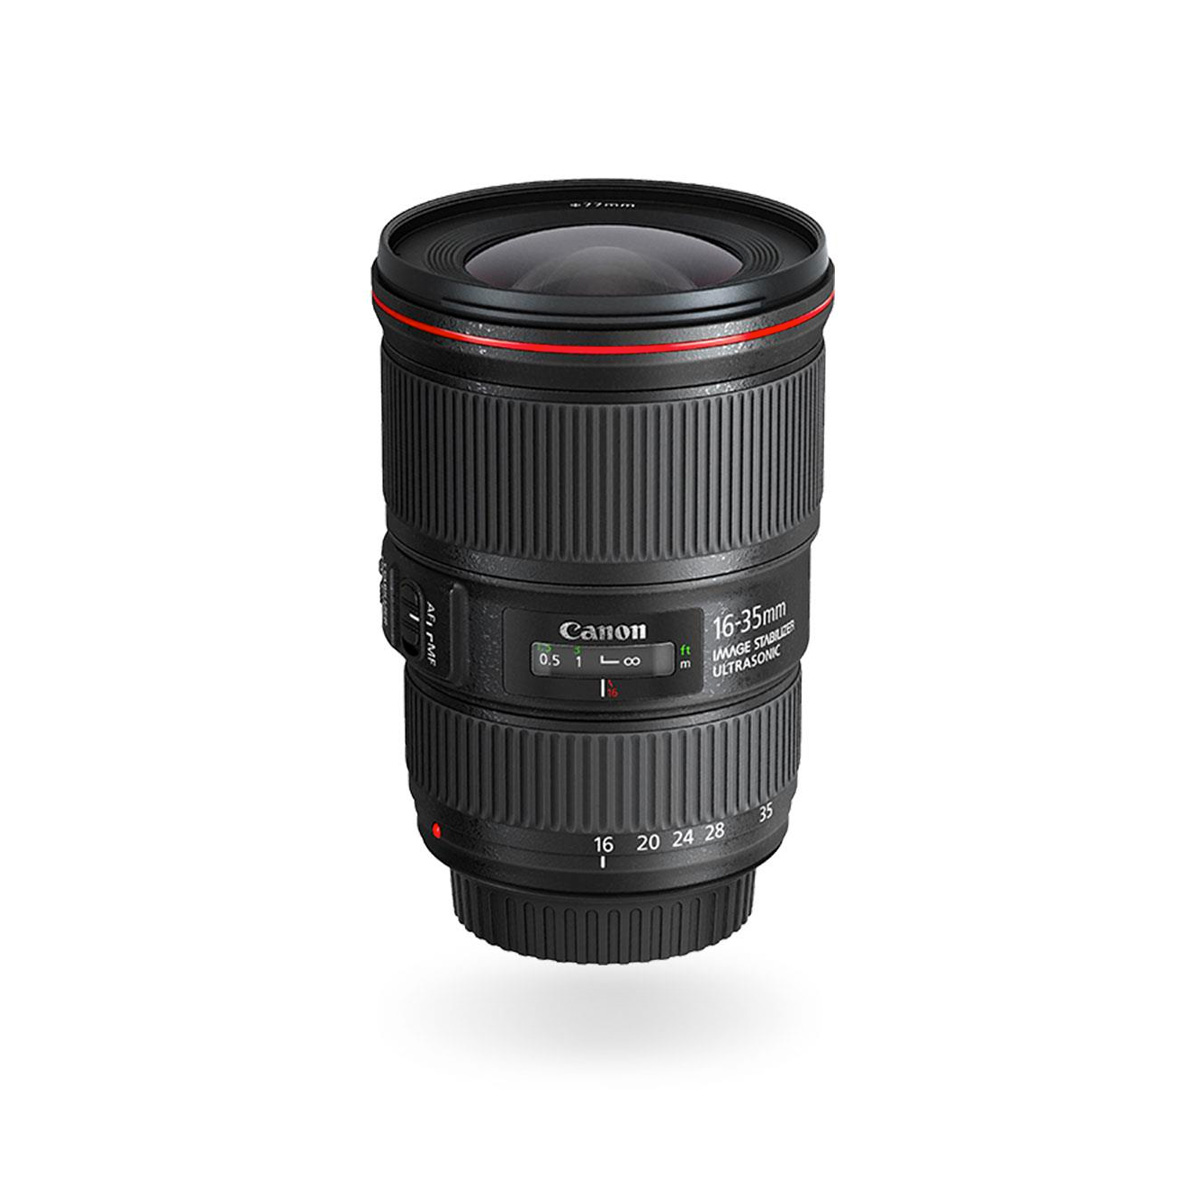 EF 16 35mm f 4L IS USM wide angle lens